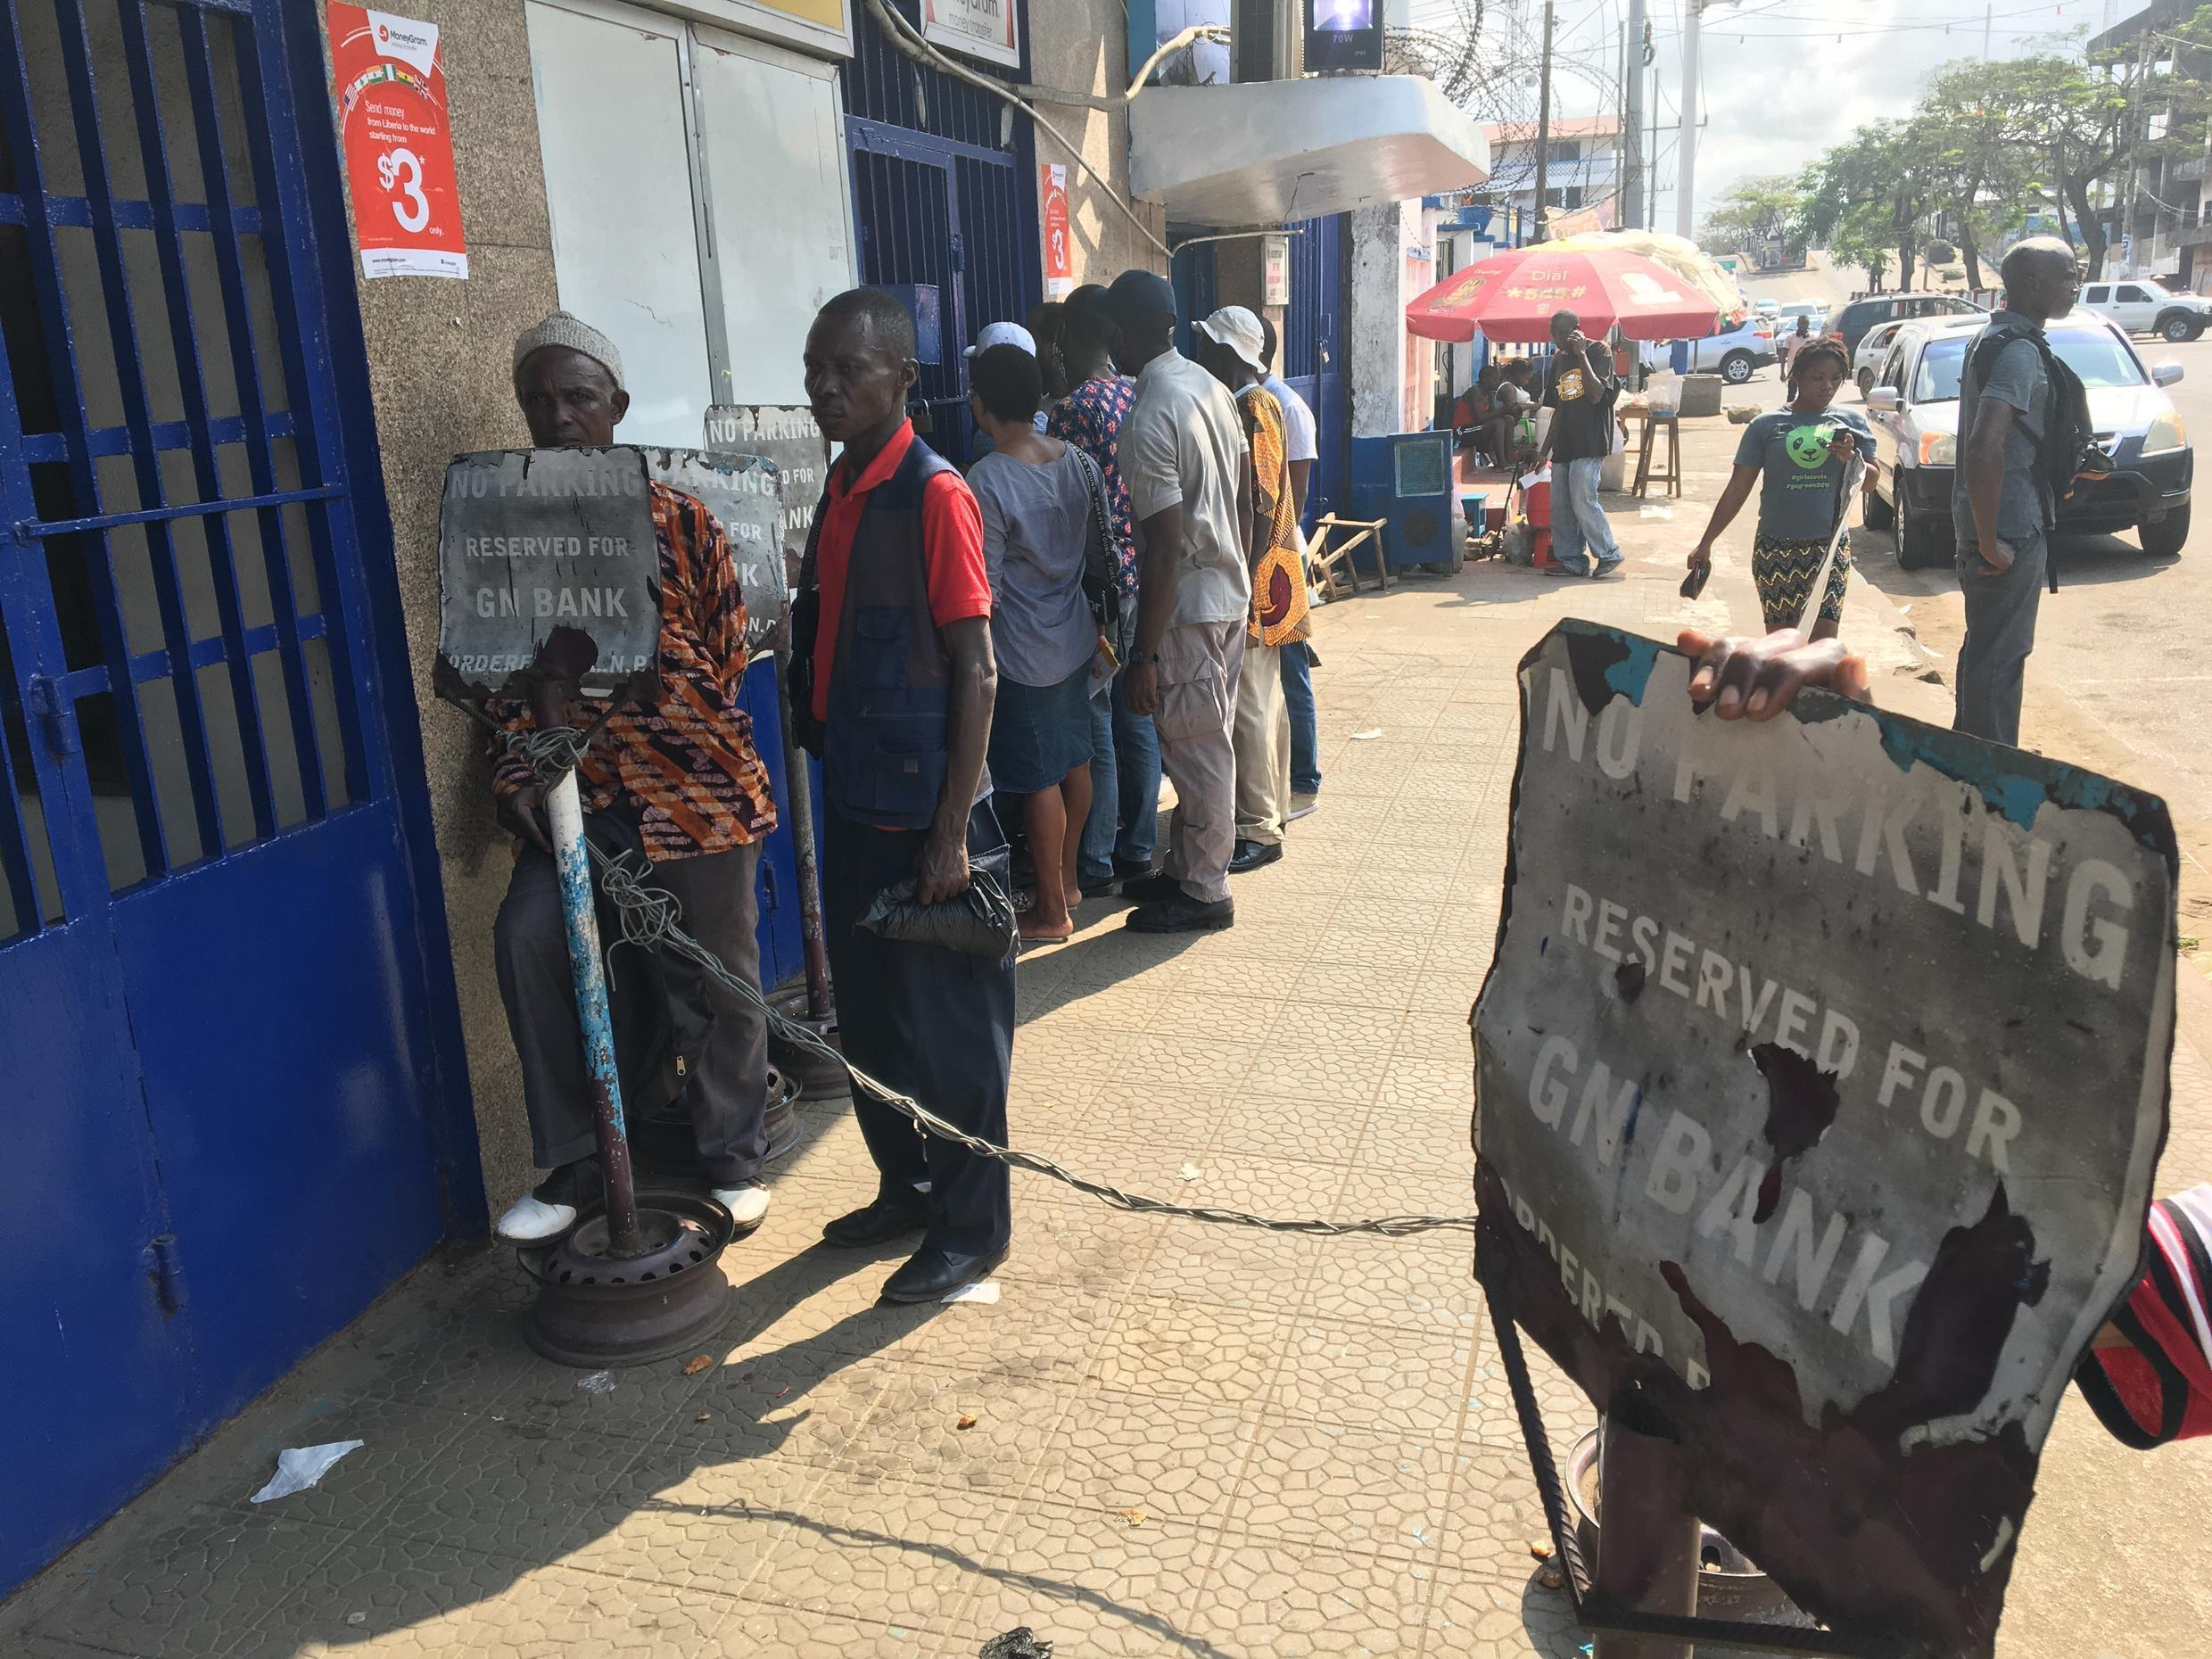 People queue outside SIB Liberia bank in Monrovia, waiting to try and withdraw cash. SIB was recently renamed, it was formerly known as GN Bank.